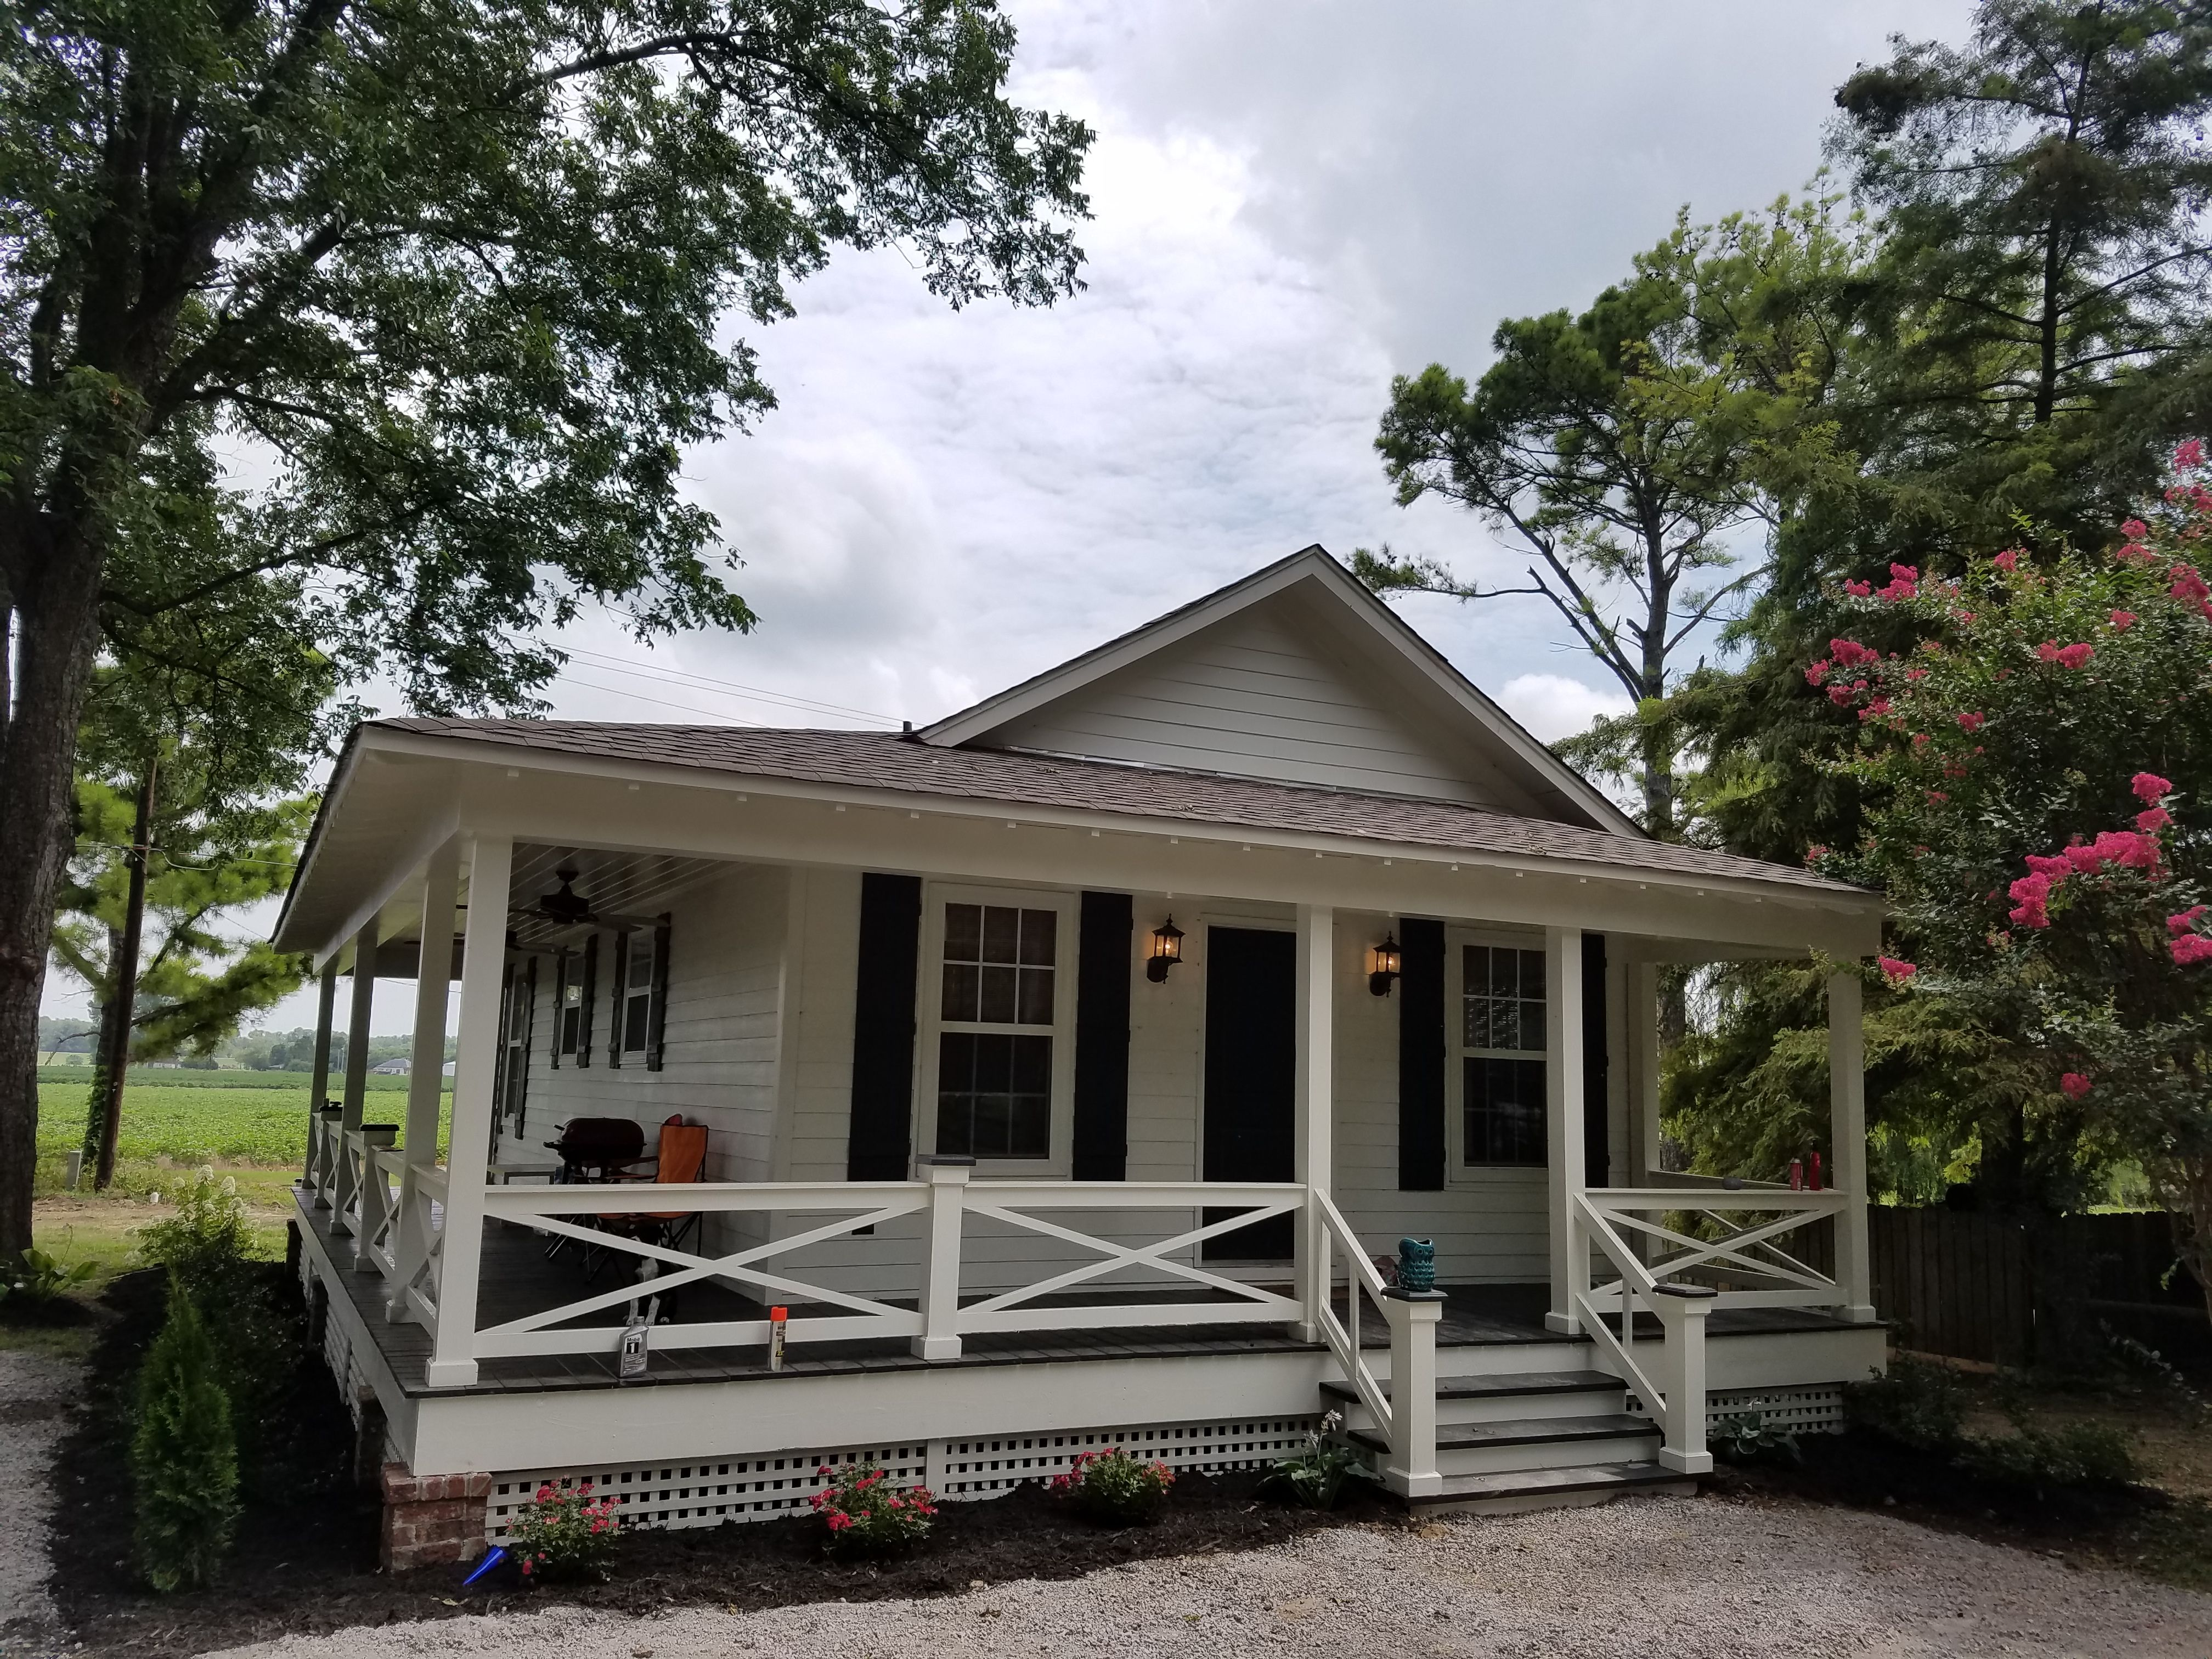 little custom homes built this 800 sq ft 2 bedroom 1 bath house with half wrapped porch for. Black Bedroom Furniture Sets. Home Design Ideas